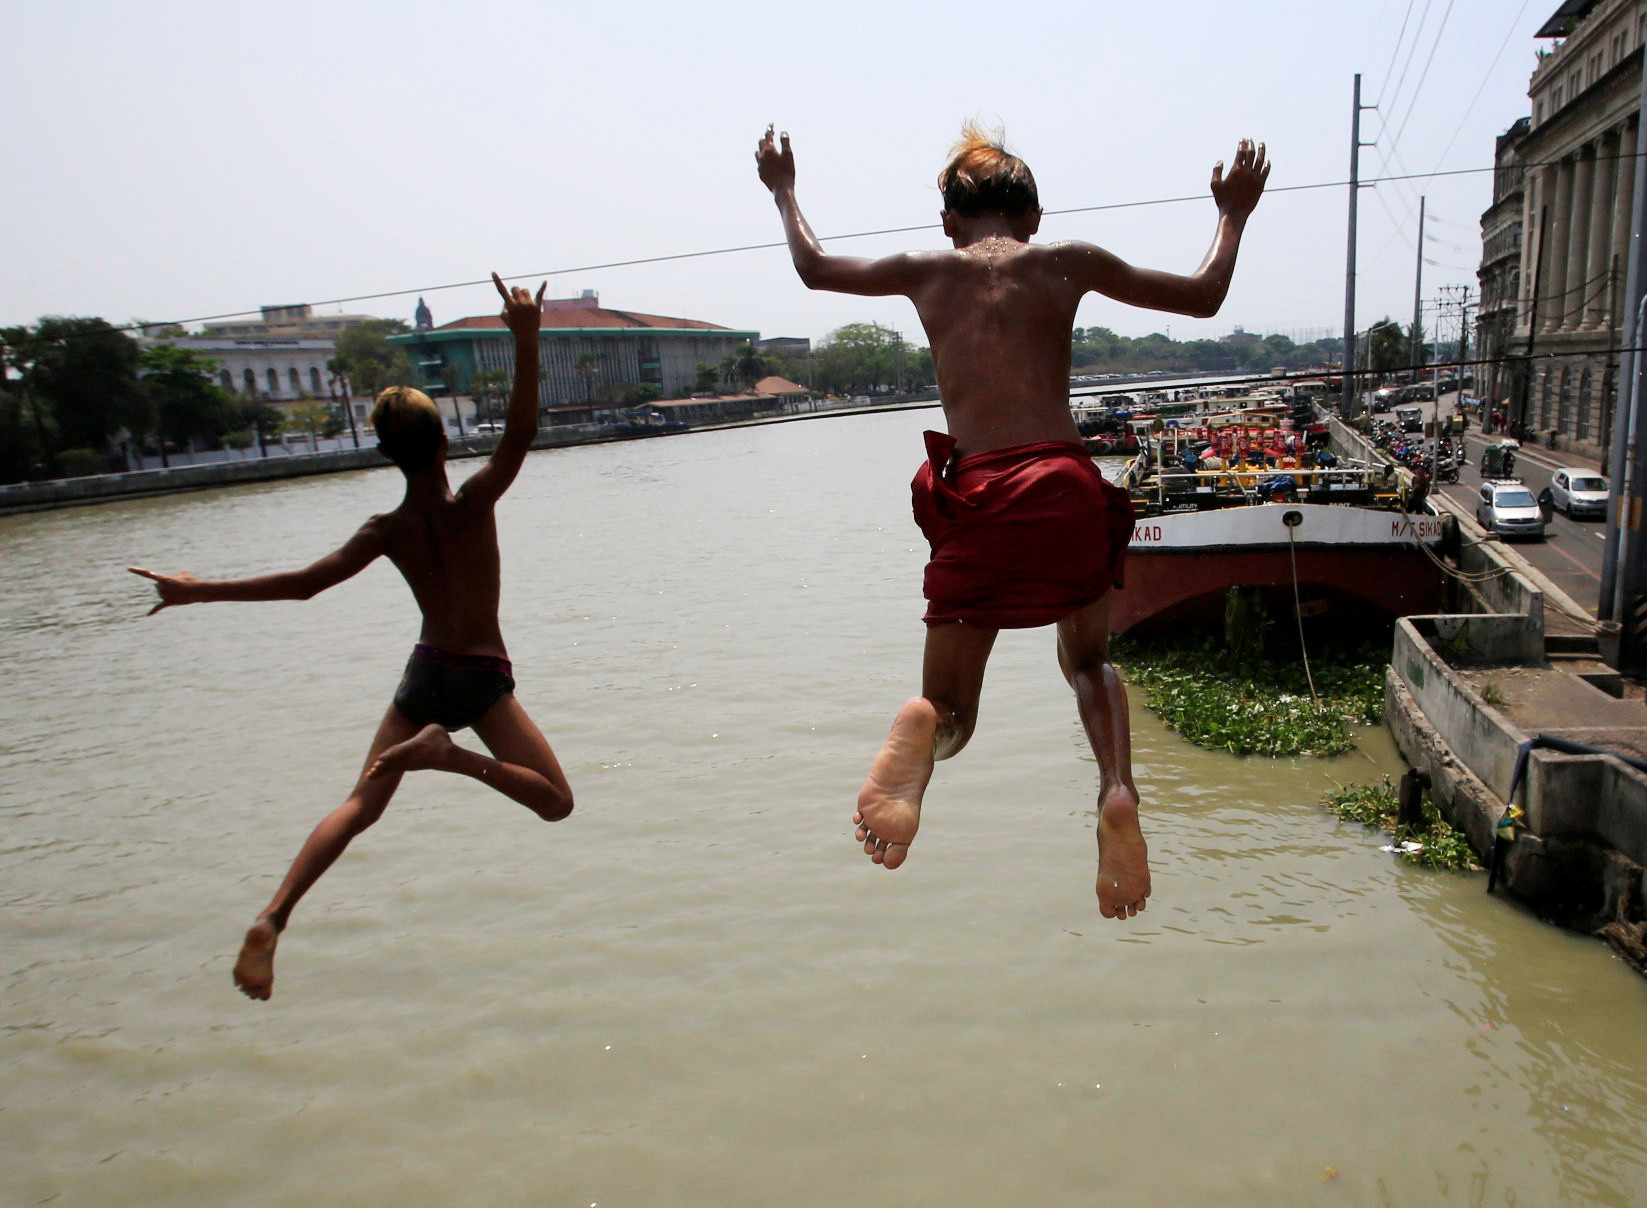 Teenagers jump into the polluted water of Manila Bay, Philippines.